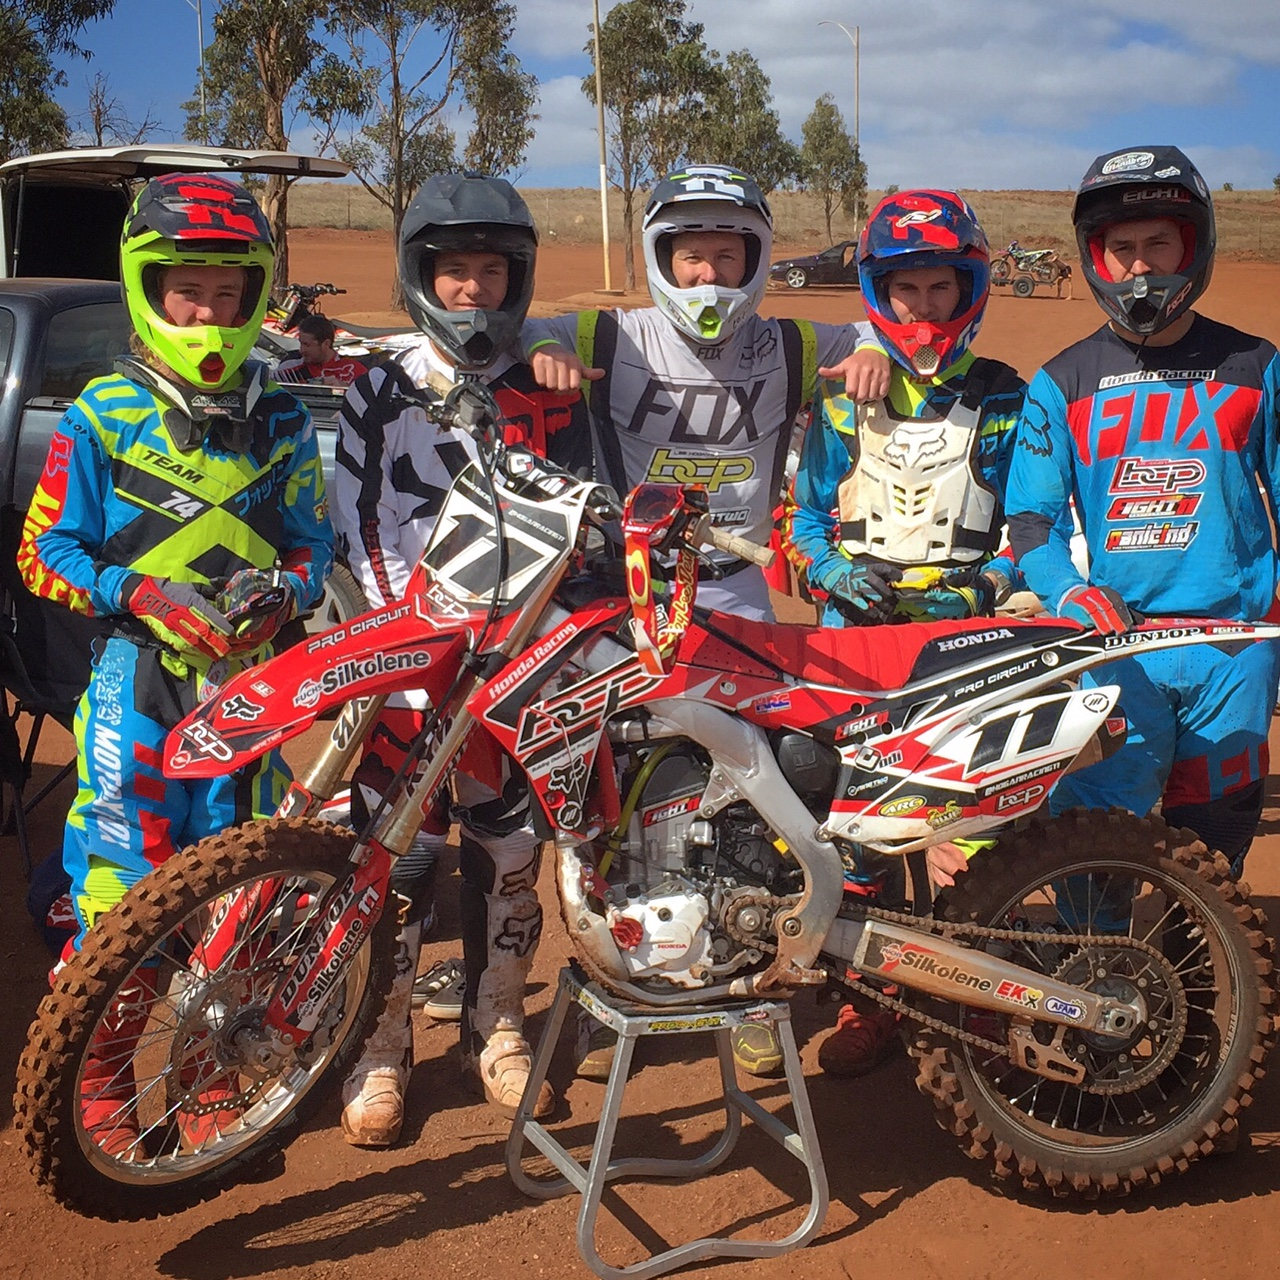 Trent collins makes his 2016 australian debut this weekend for Team honda purchase program